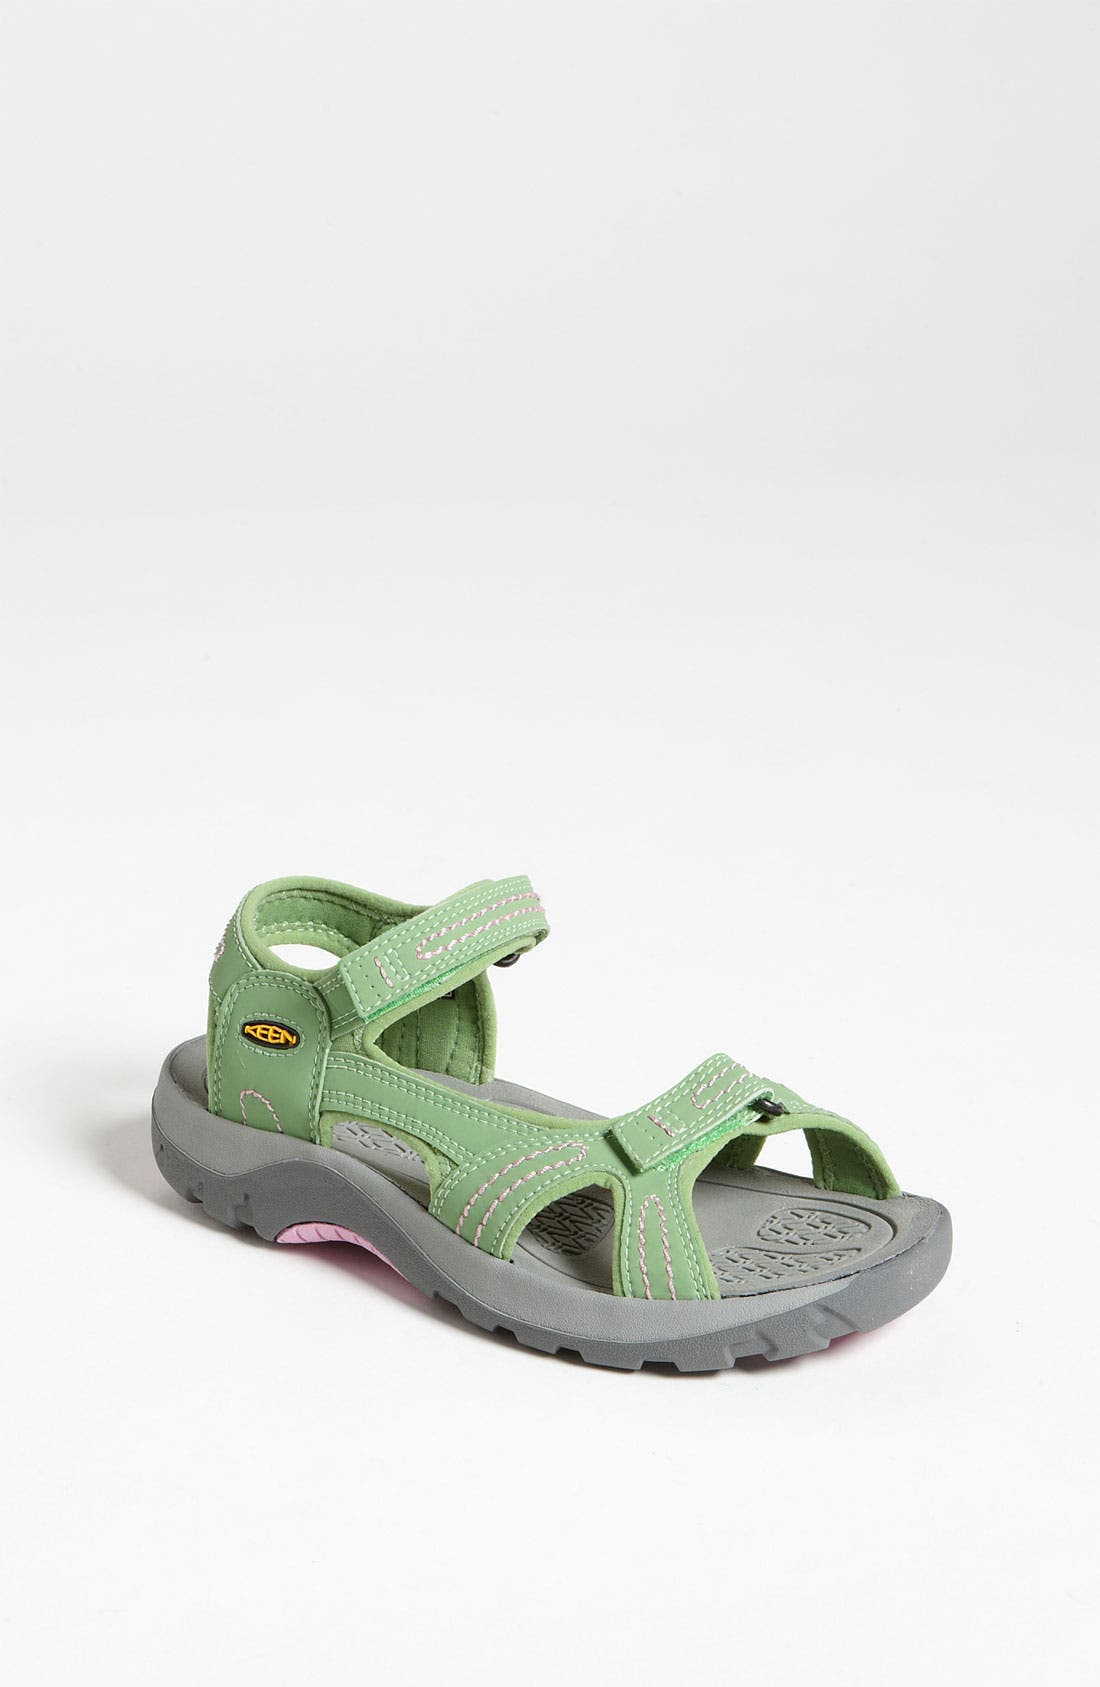 Main Image - Keen 'Jura' Sandal (Toddler, Little Kid & Big Kid)